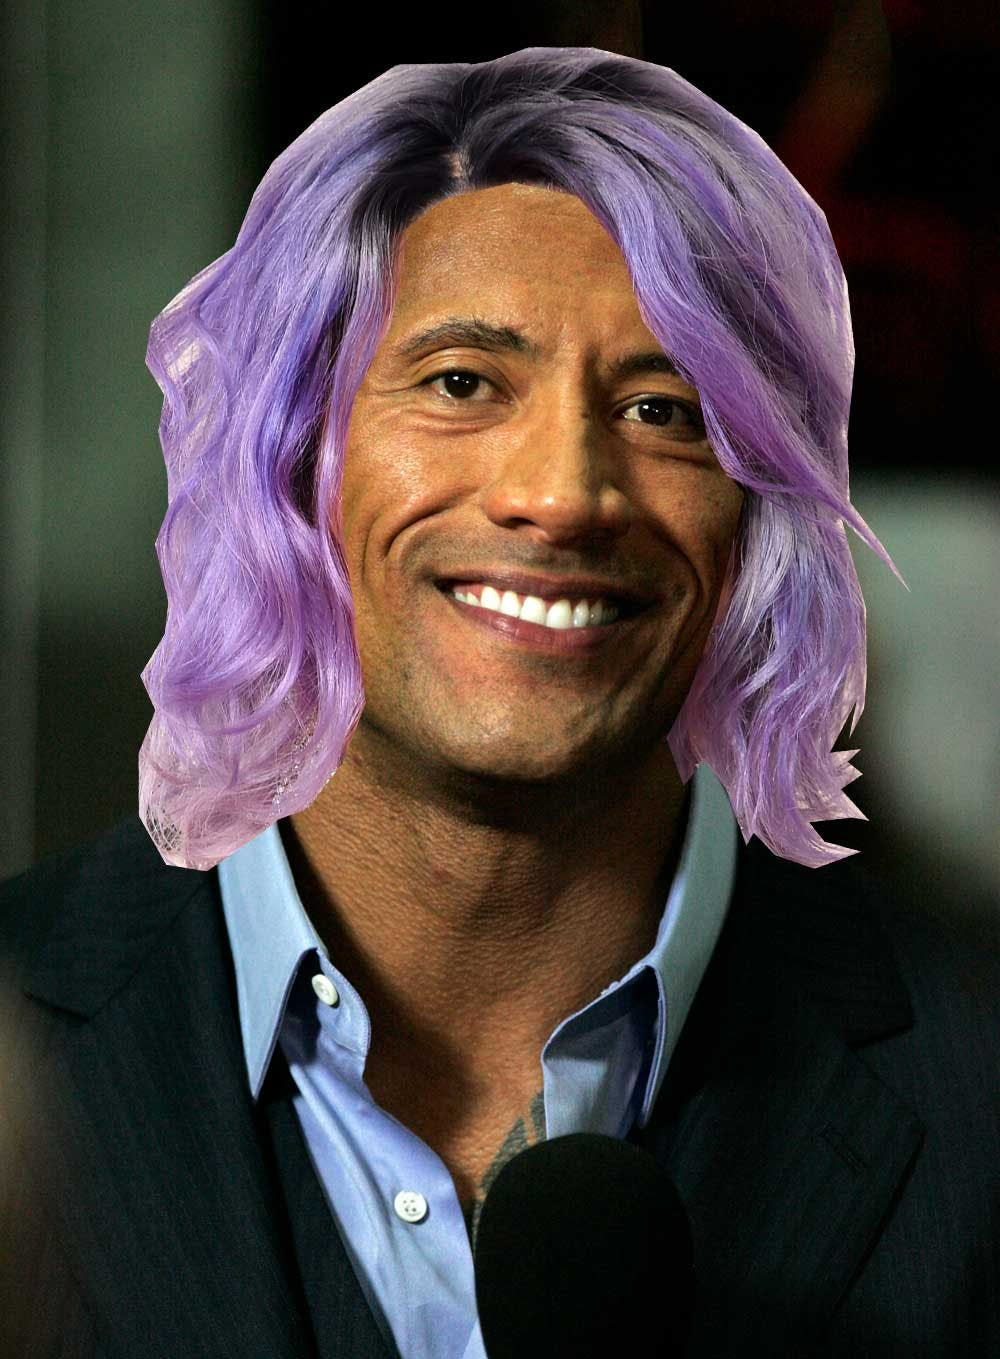 The Rock with Katy Perry's hair